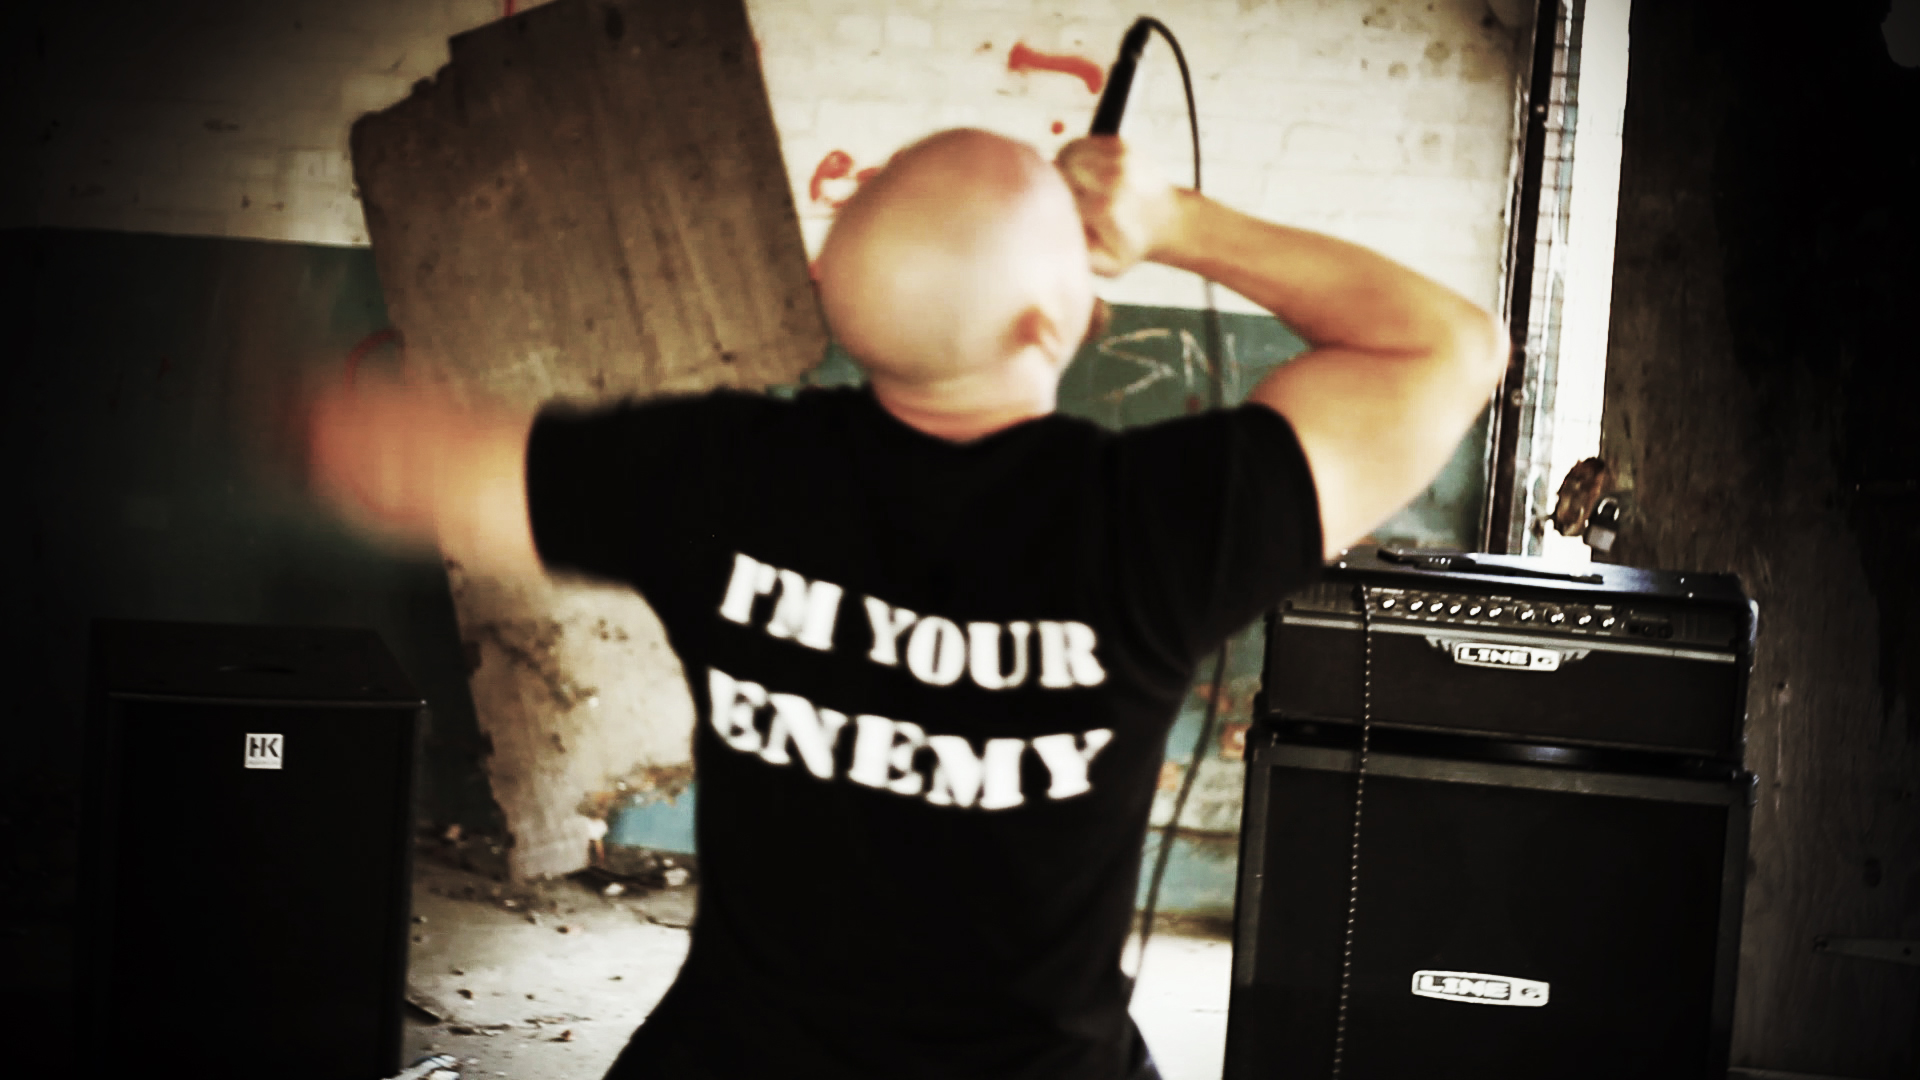 Get High or Die Trying - I'm your enemy